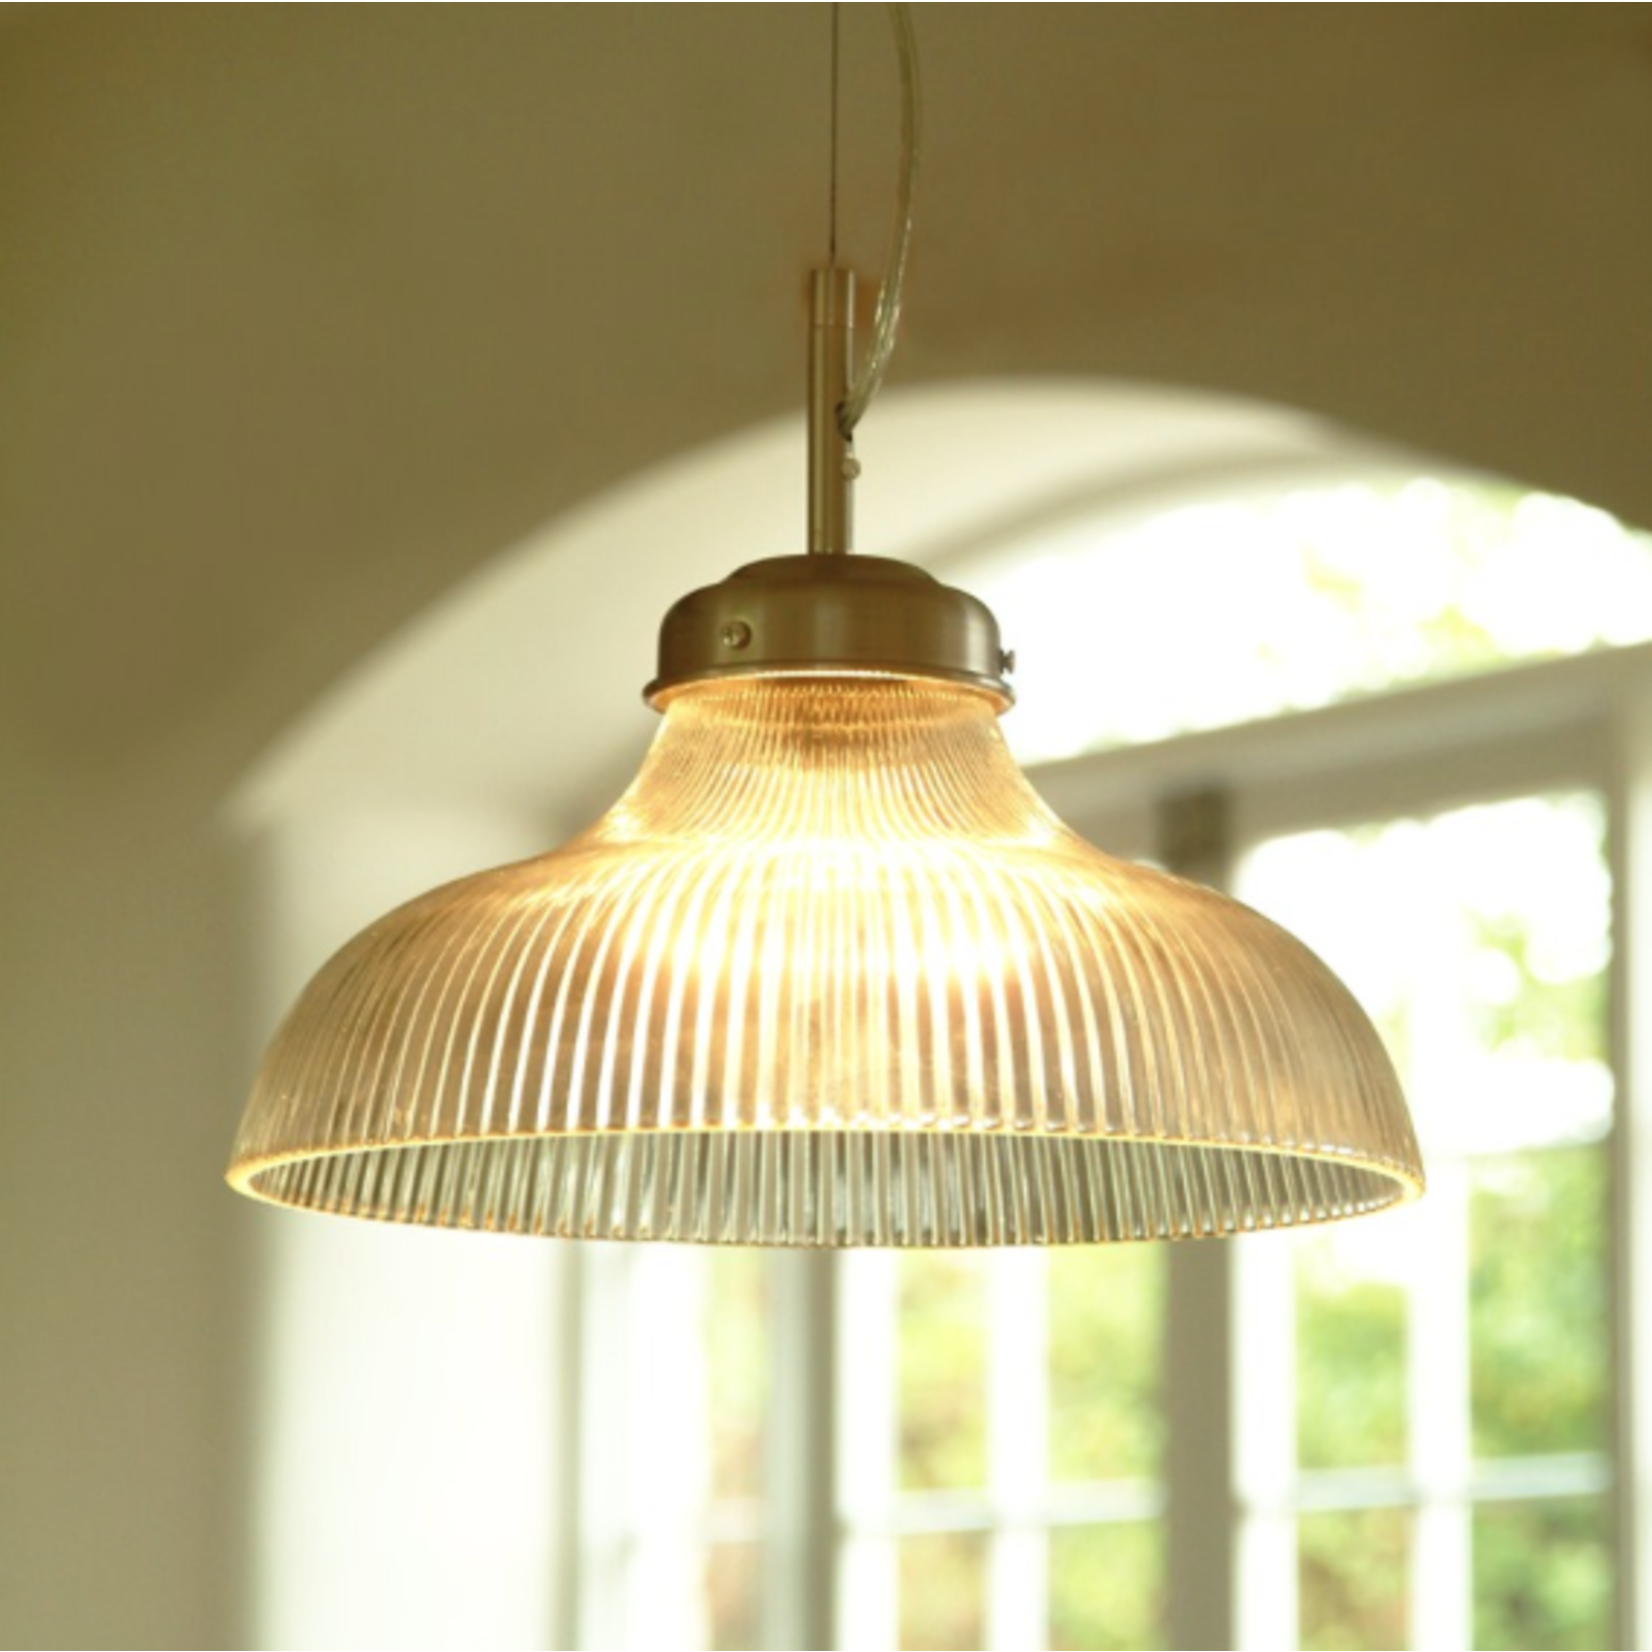 GT Fluted Glass Shade Only -Choose Flex Lampholder and Rose or Replacement SHADE for Paris Light - NO FIXINGS fits our shade ring lampholders see the images